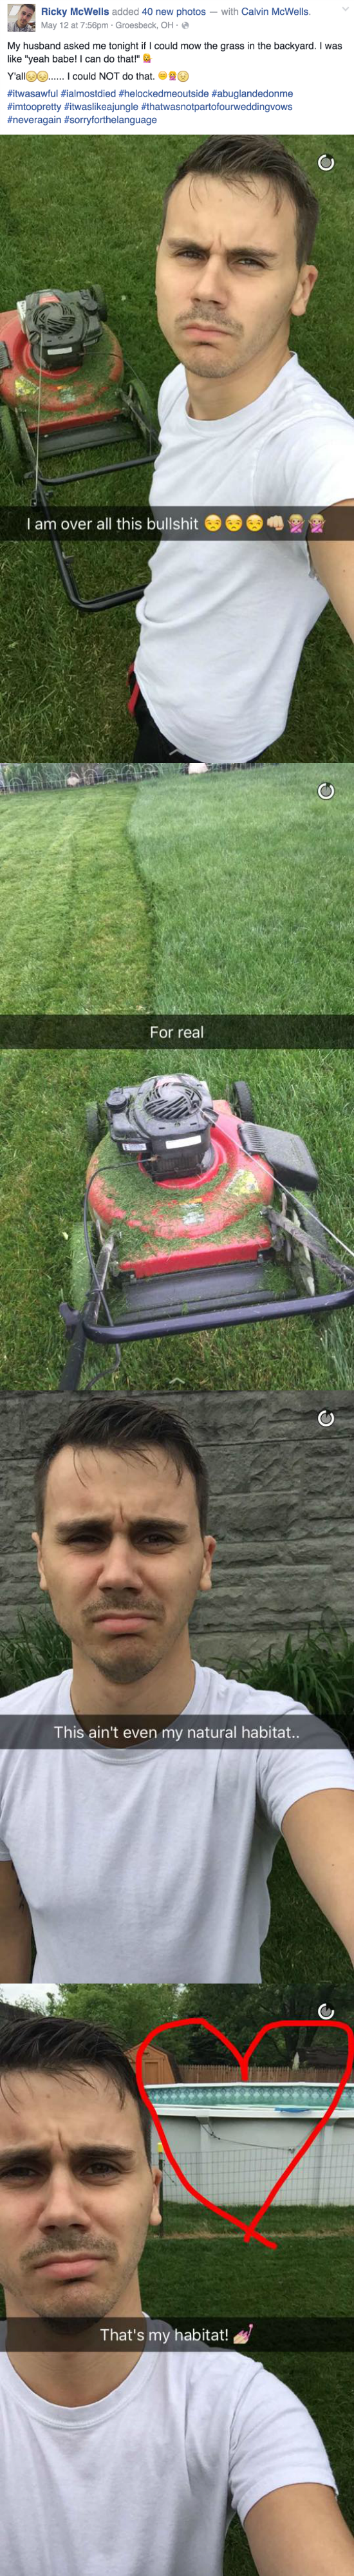 """Lawn - Ricky McWells added 40 new photos - with Calvin McWells. May 12 at 7:56pm- Groesbeck, OH - My husband asked me tonight if I could mow the grass in the backyard. I was like """"yeah babe! I can do that!"""" Y'all could NOT do that. #itwasawful #ialmostdied #helockedmeoutside #abuglandedonme #imtoopretty #itwaslikeajungle #thatwasnotpartofourweddingvows #neveragain #sorryforthelanguage I am over all this bullshit For real This ain't even my natural habitat... That's my habitat! о"""